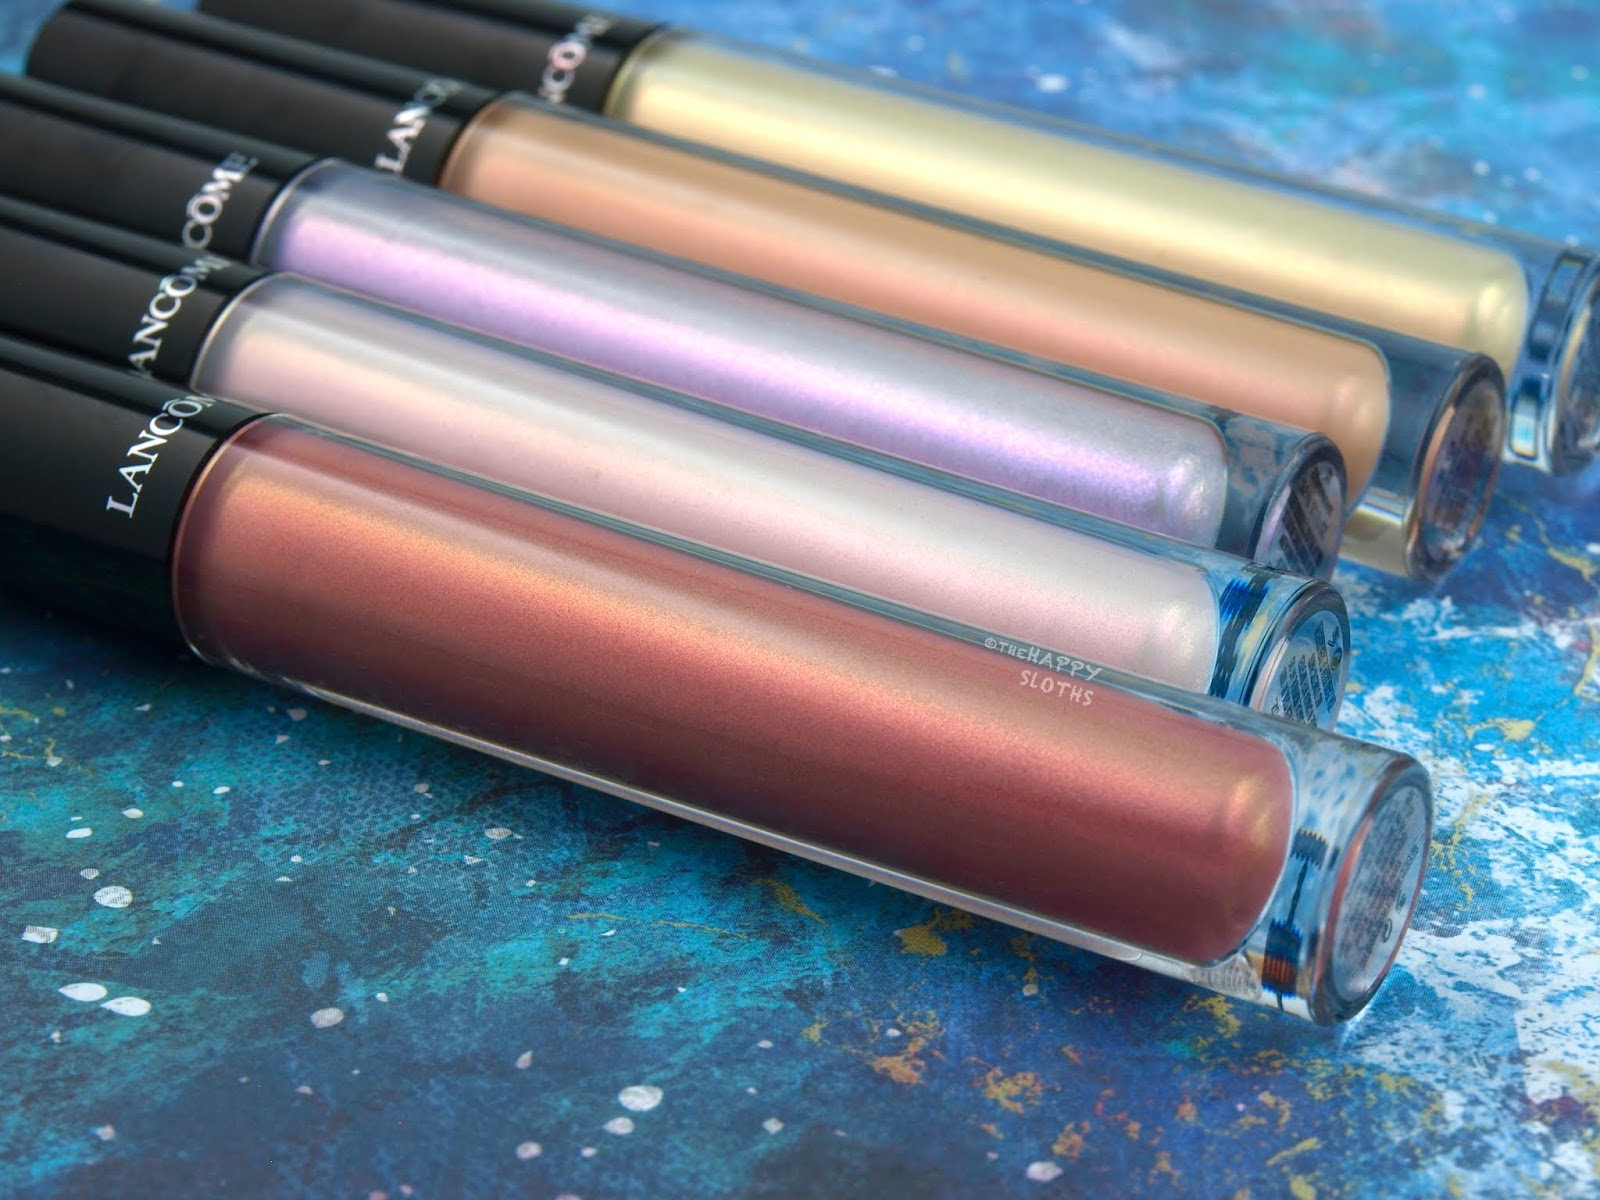 Lancome | Prismatic Plump Lip Gloss: Review and Swatches